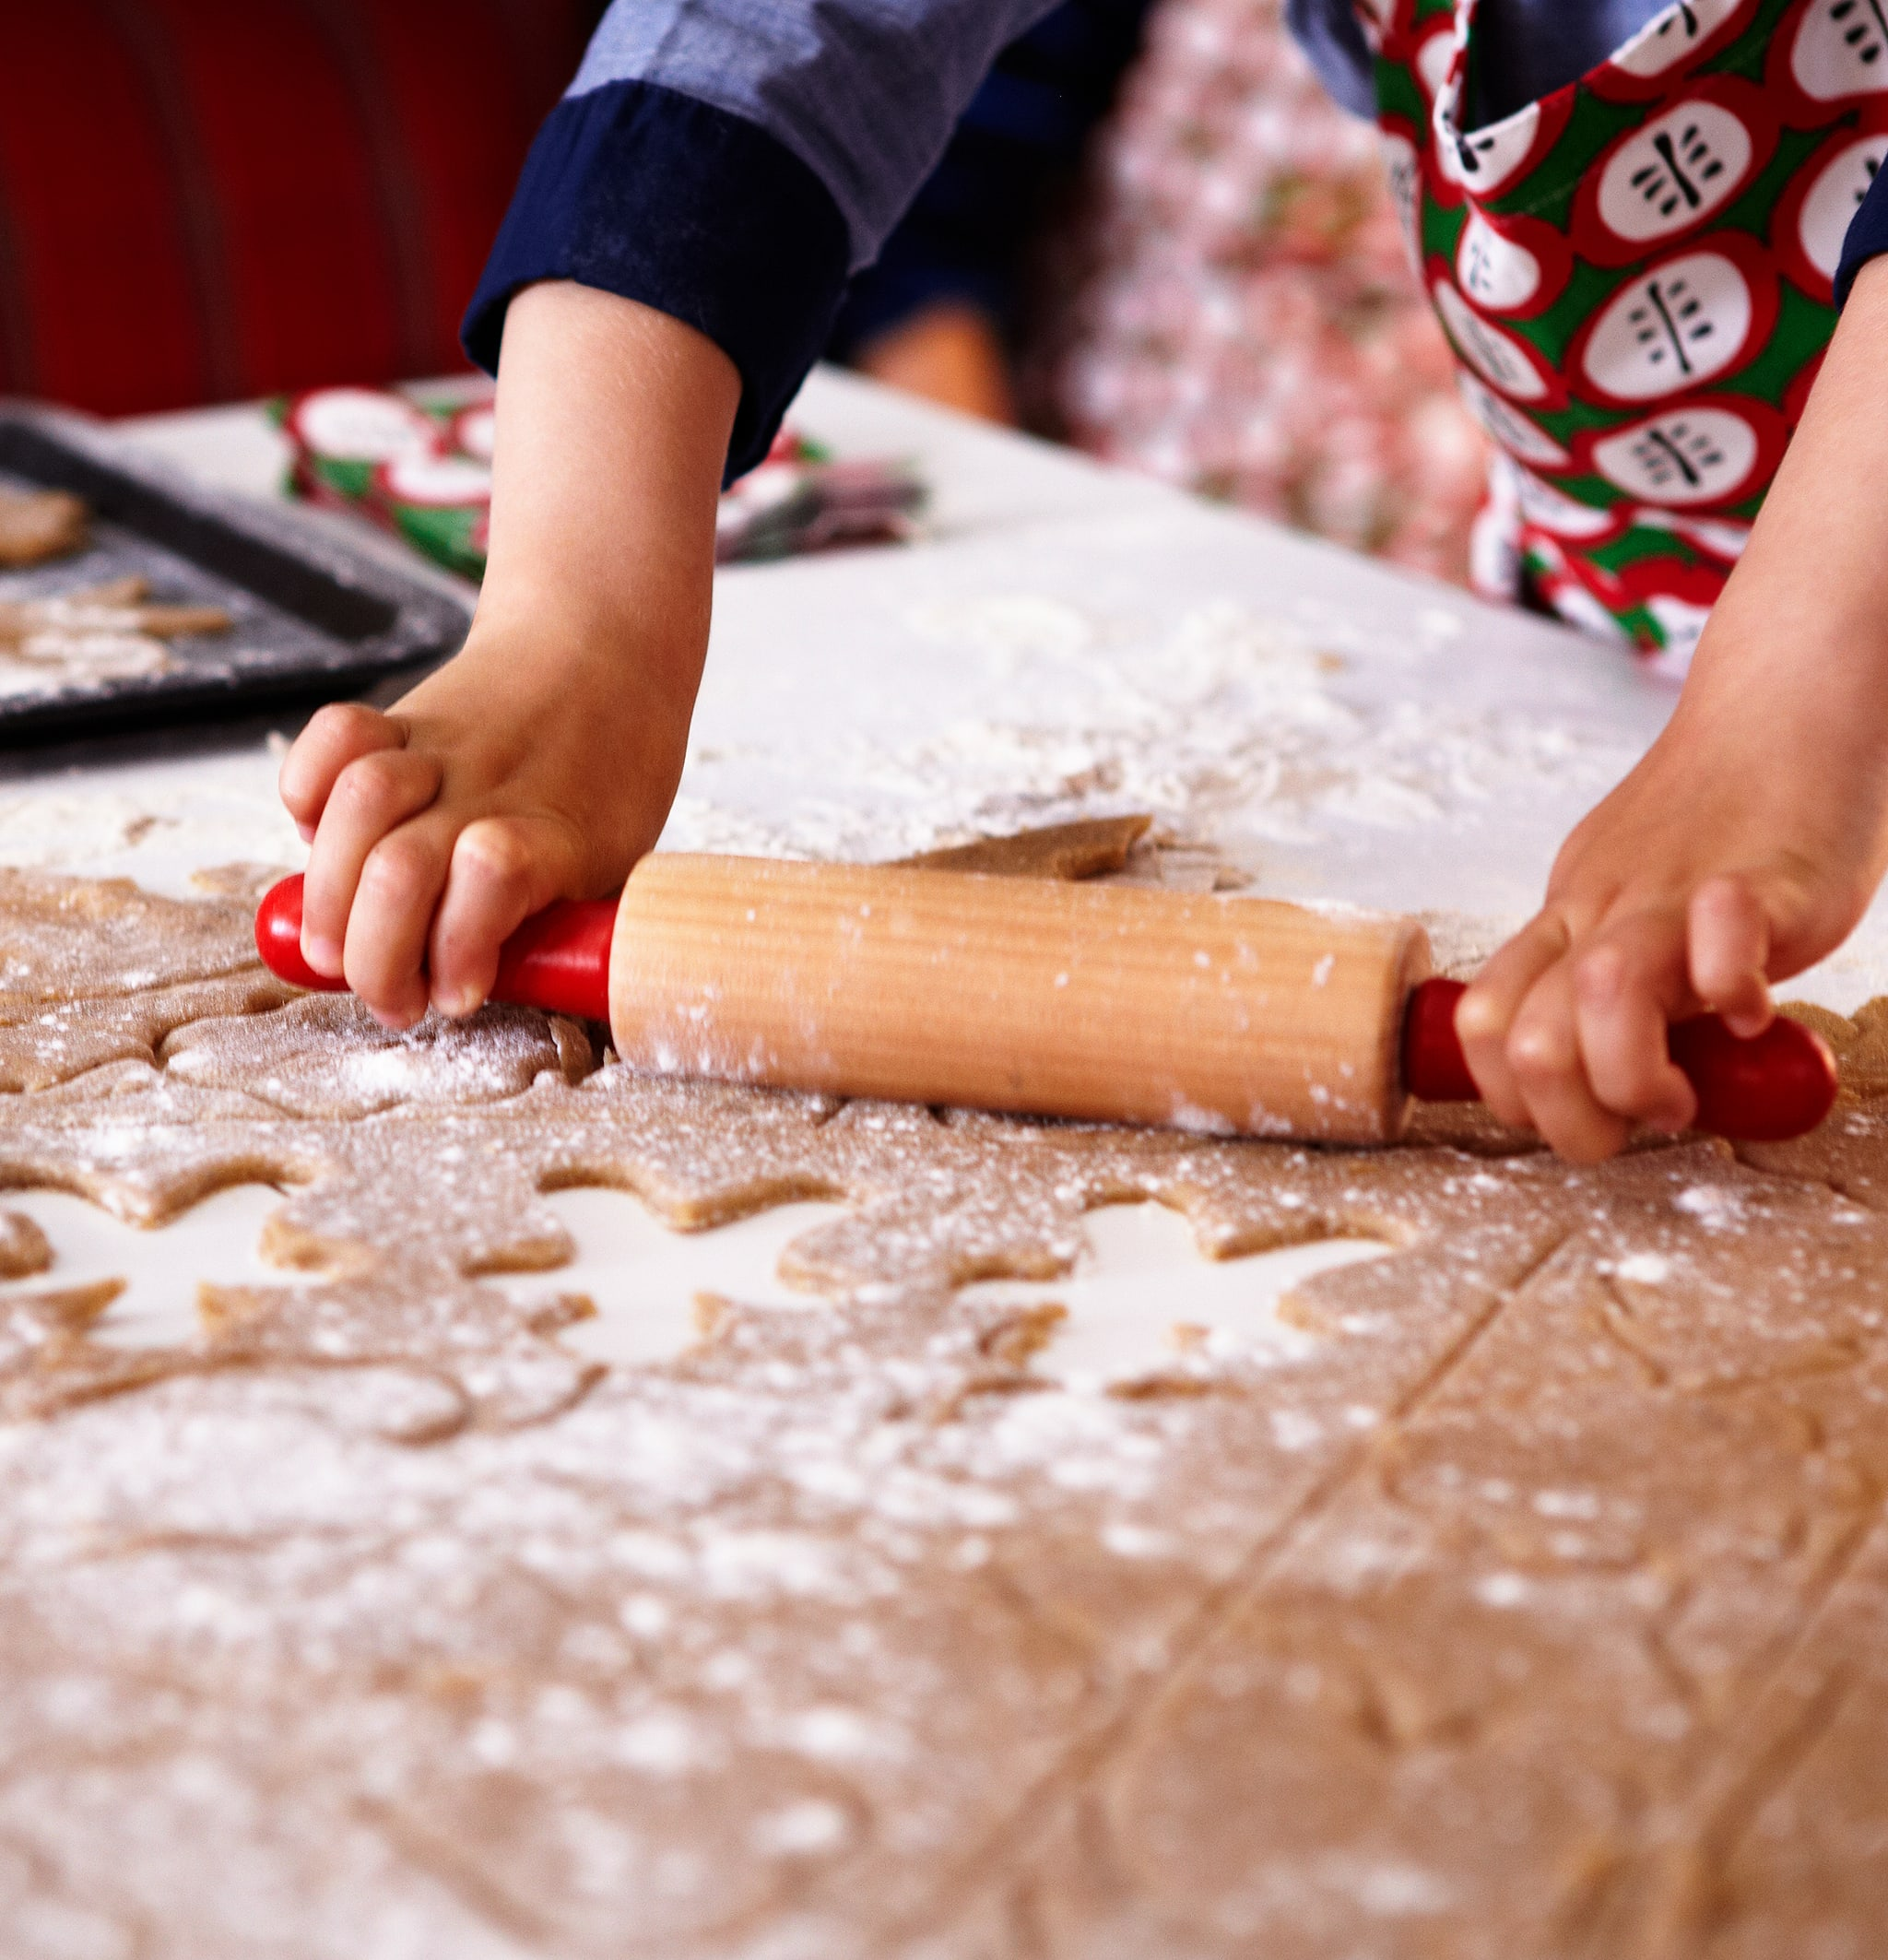 The hands of an apron-clad child hold a rolling pin, working a sheet of flour-dusted gingerbread dough with shapes cut out.